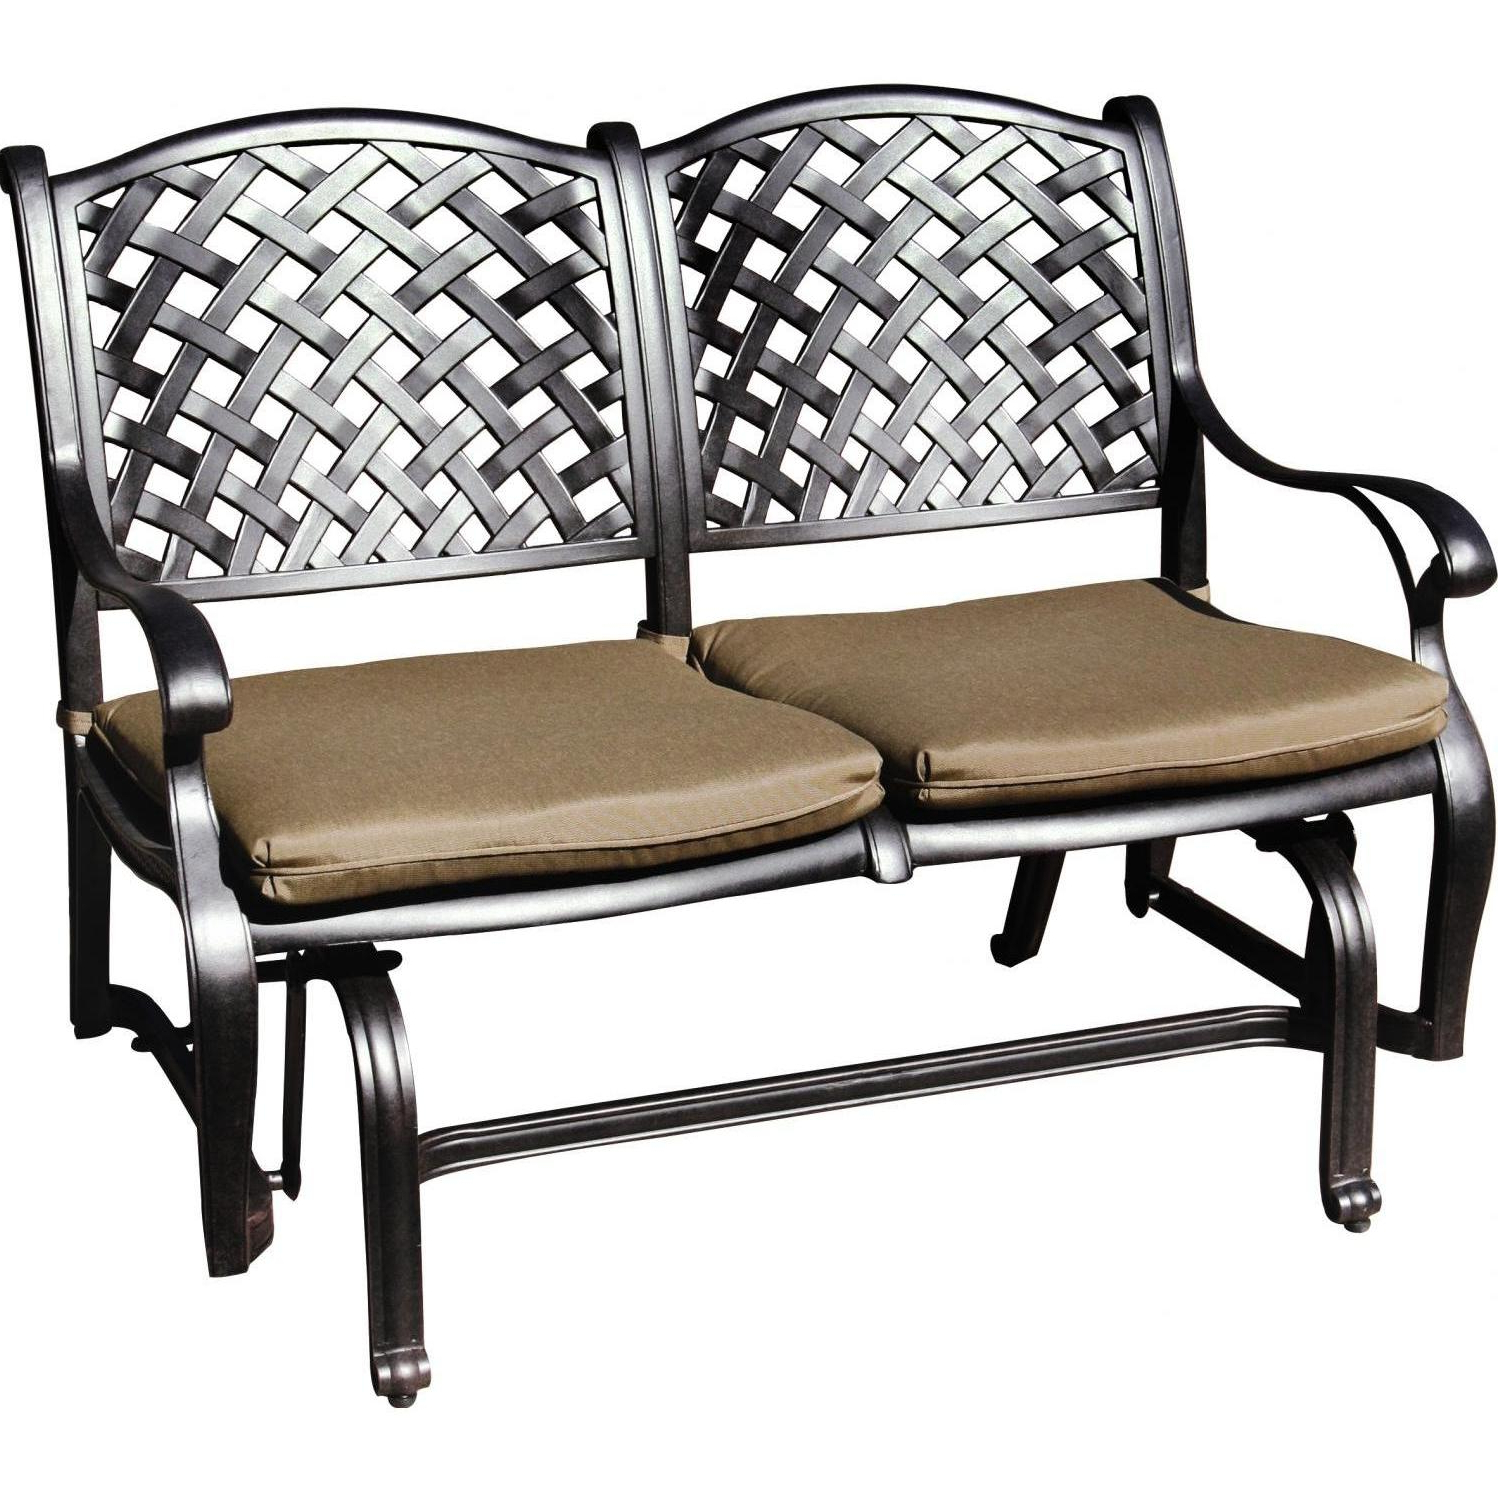 Glider Benches With Cushions Inside Most Recent Darlee Nassau Cast Aluminum Patio Bench Glider (View 12 of 30)